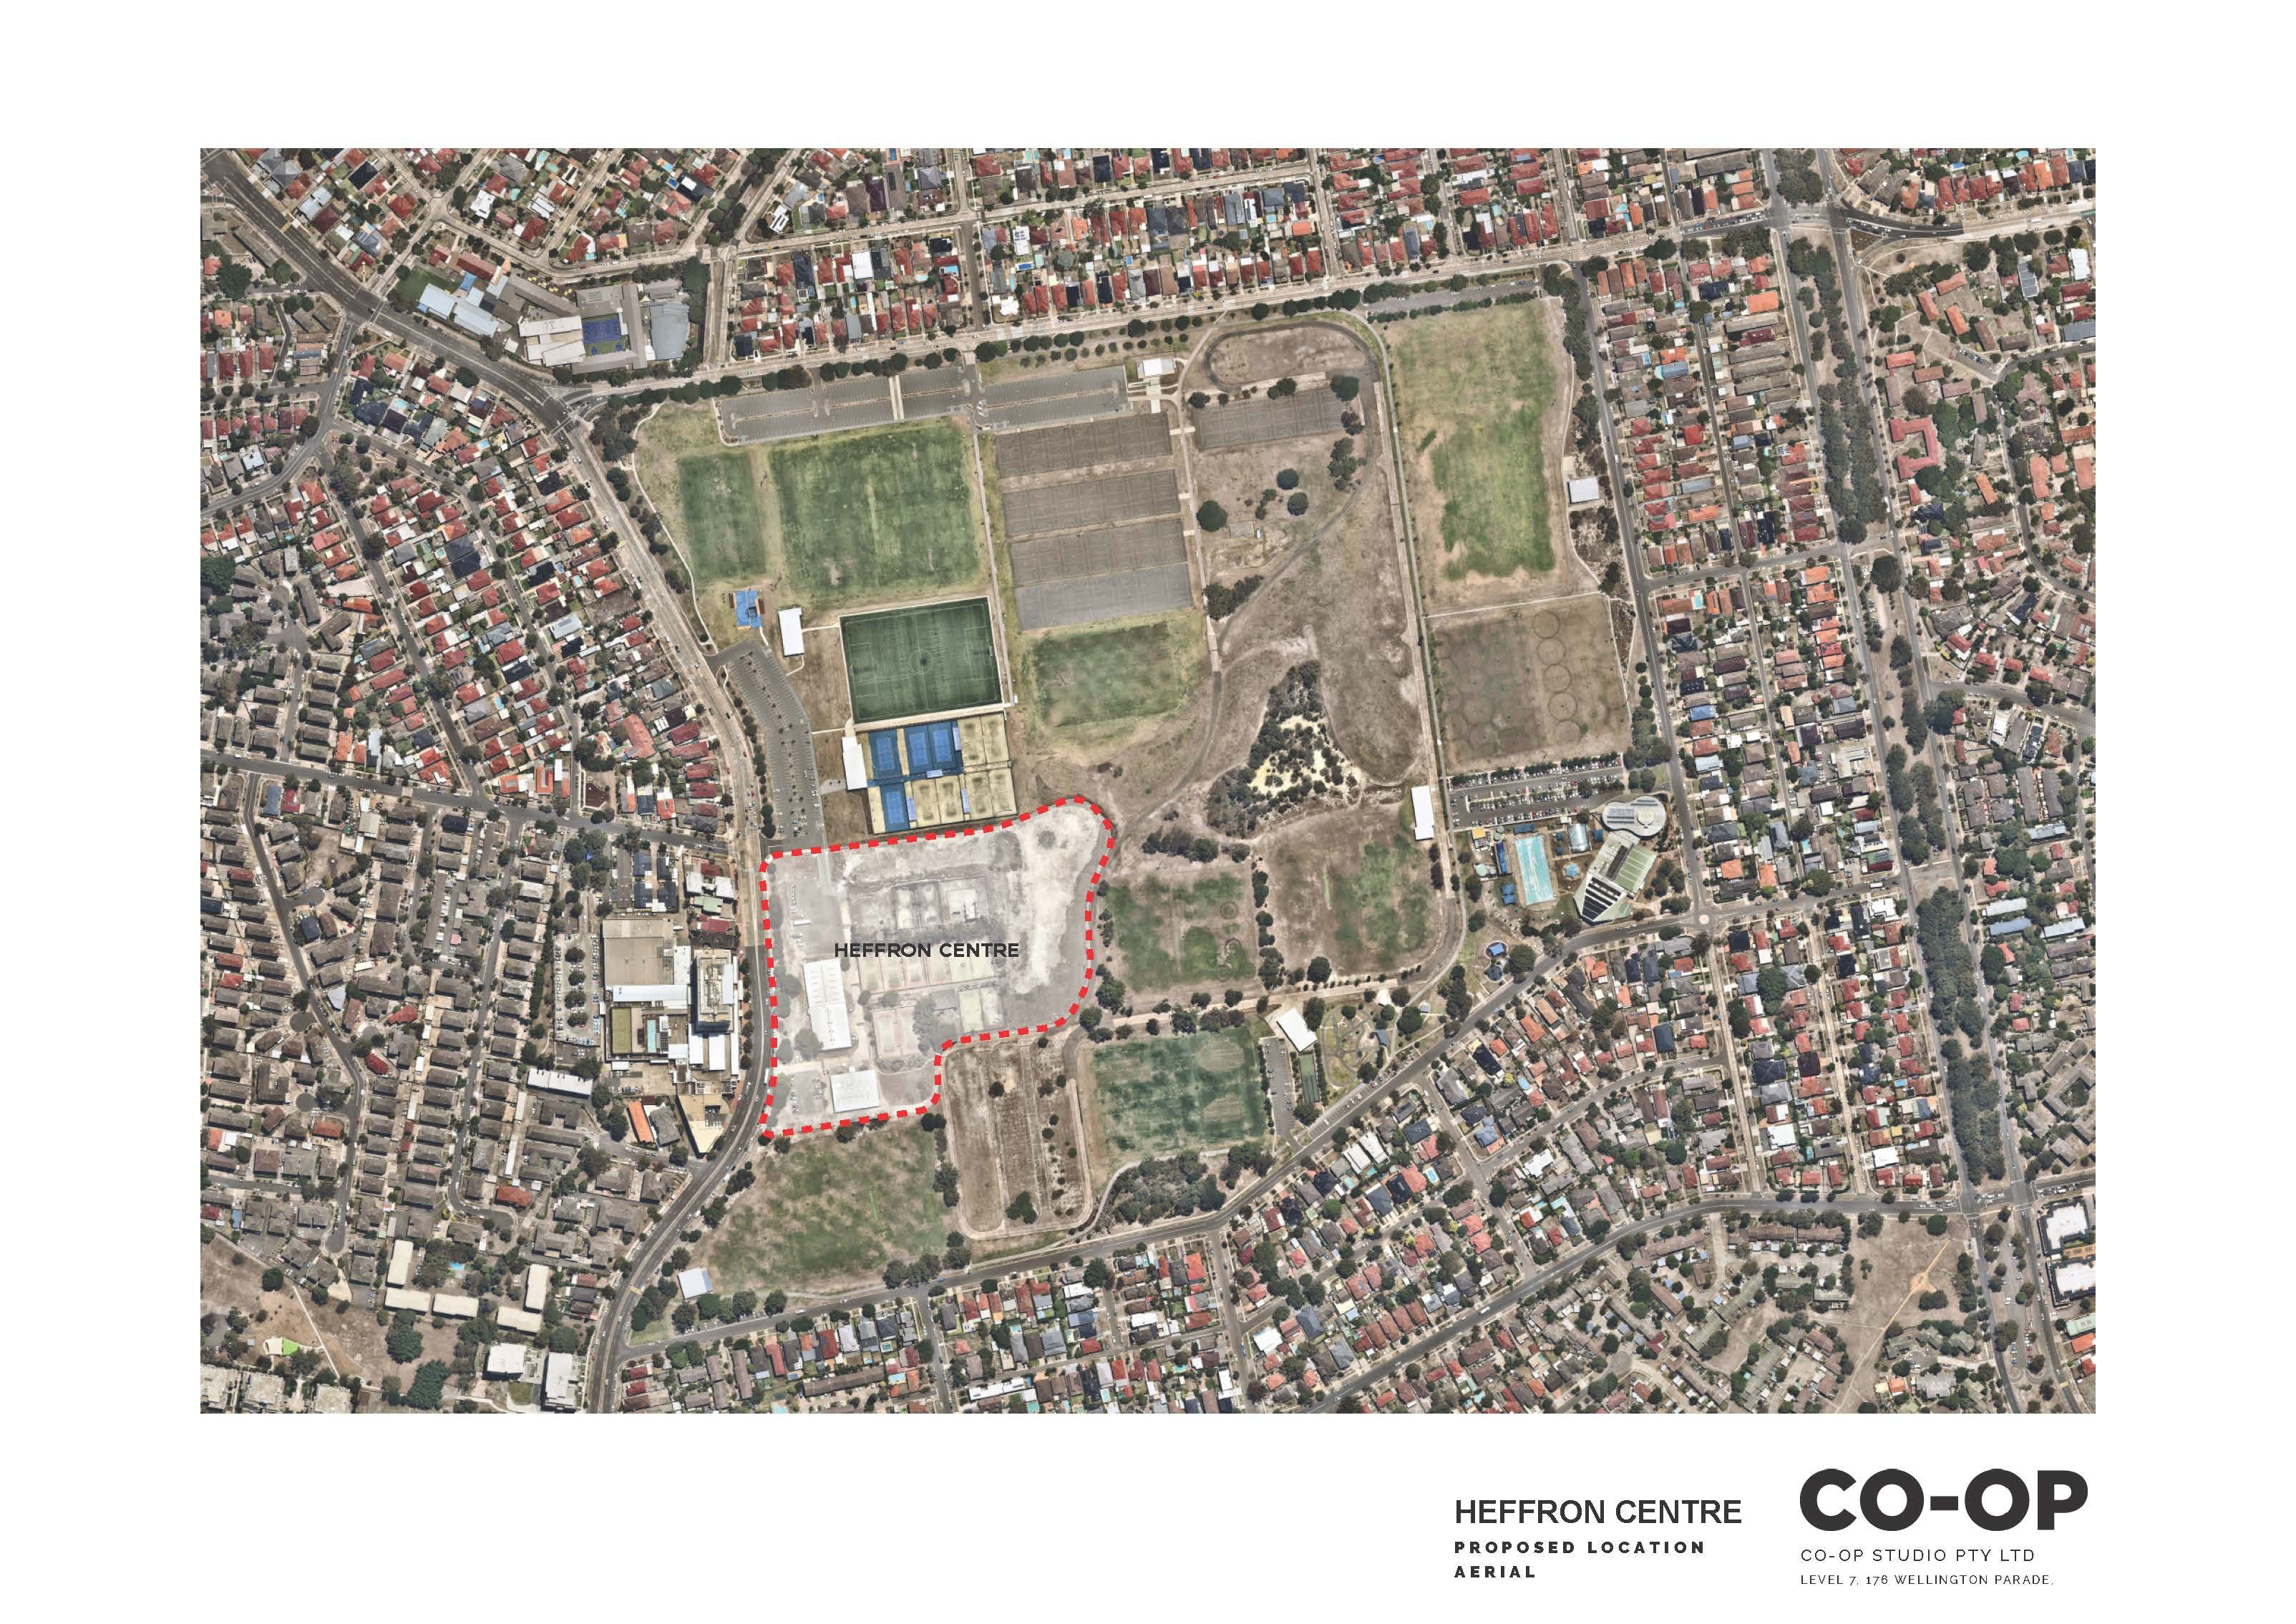 200403_Heffron Centre_Aerial Location (002).jpg